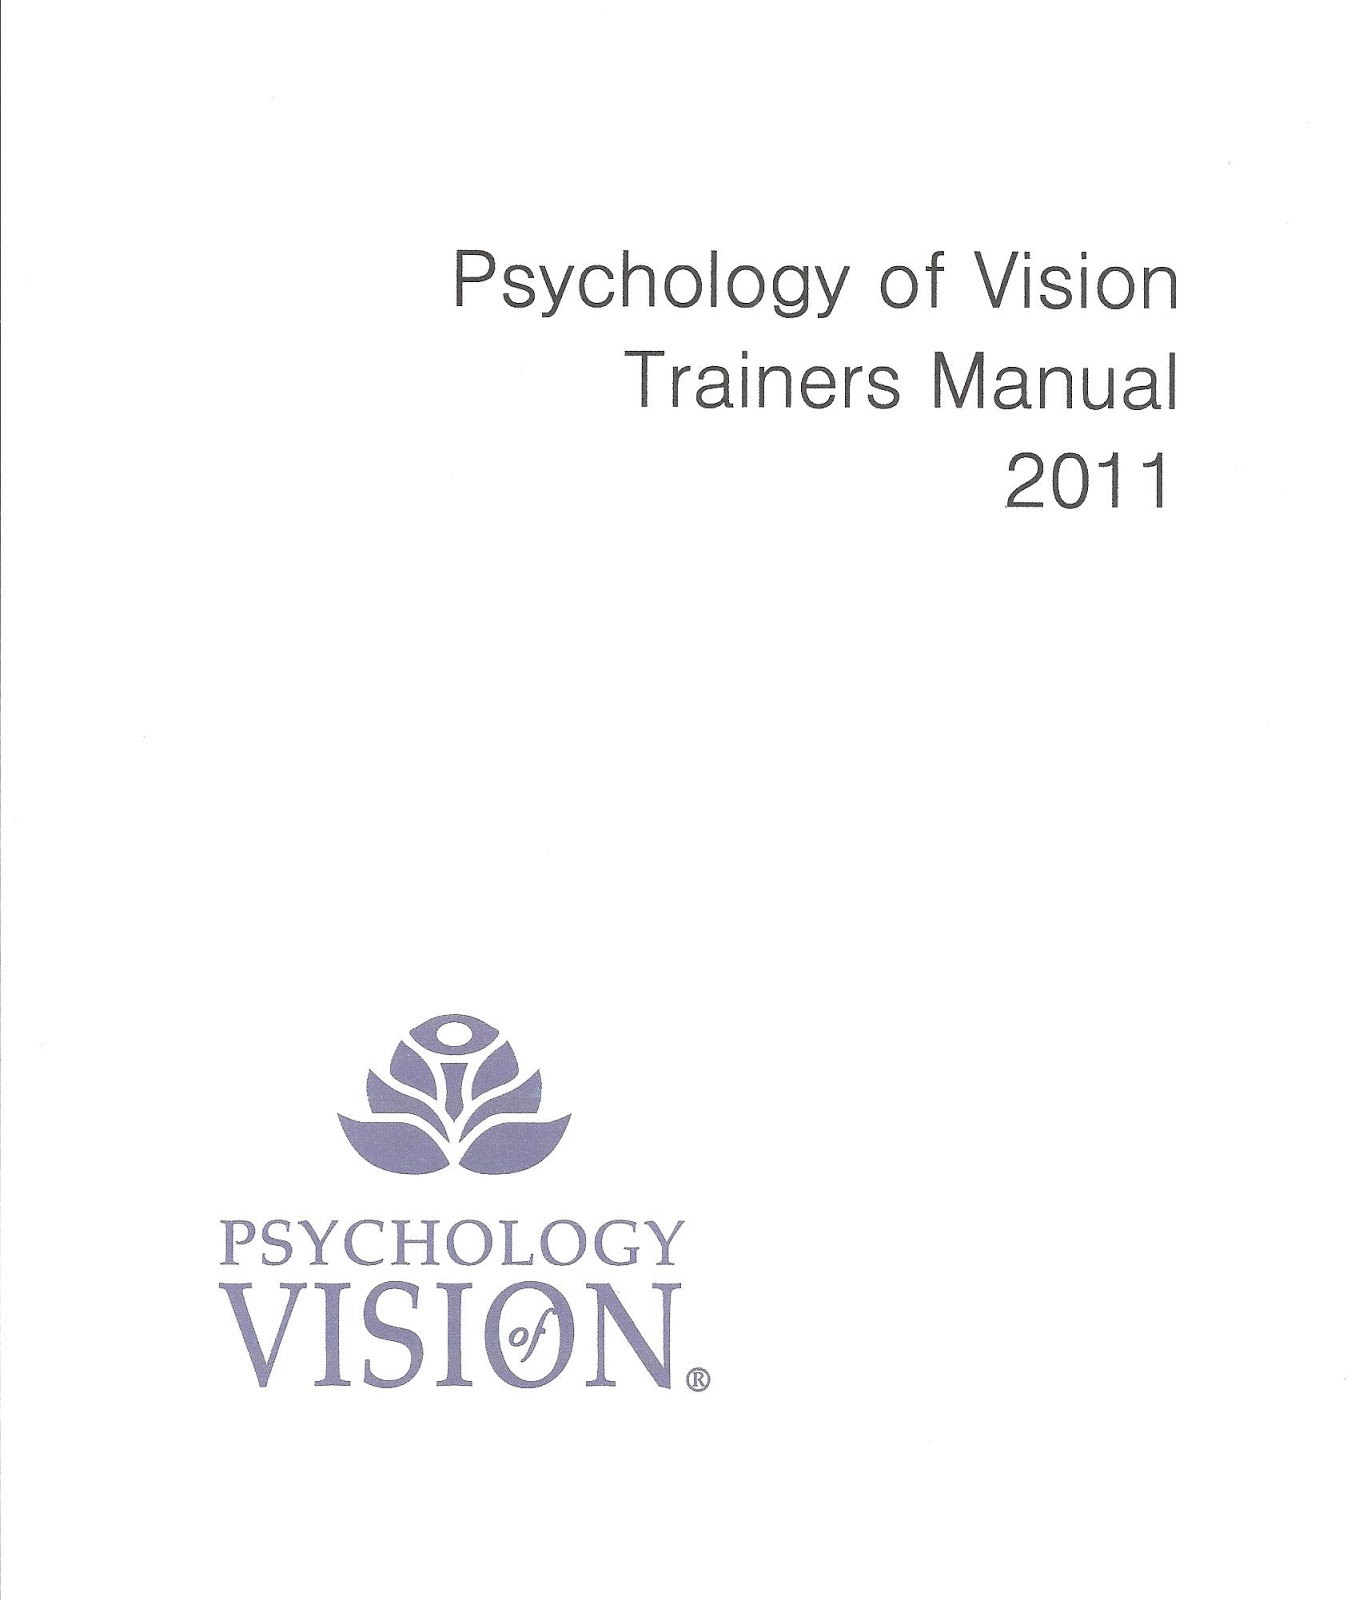 Documents about spezzano and associates ltd psychology of vision psychology of vision trainers manual 2011 fandeluxe Choice Image